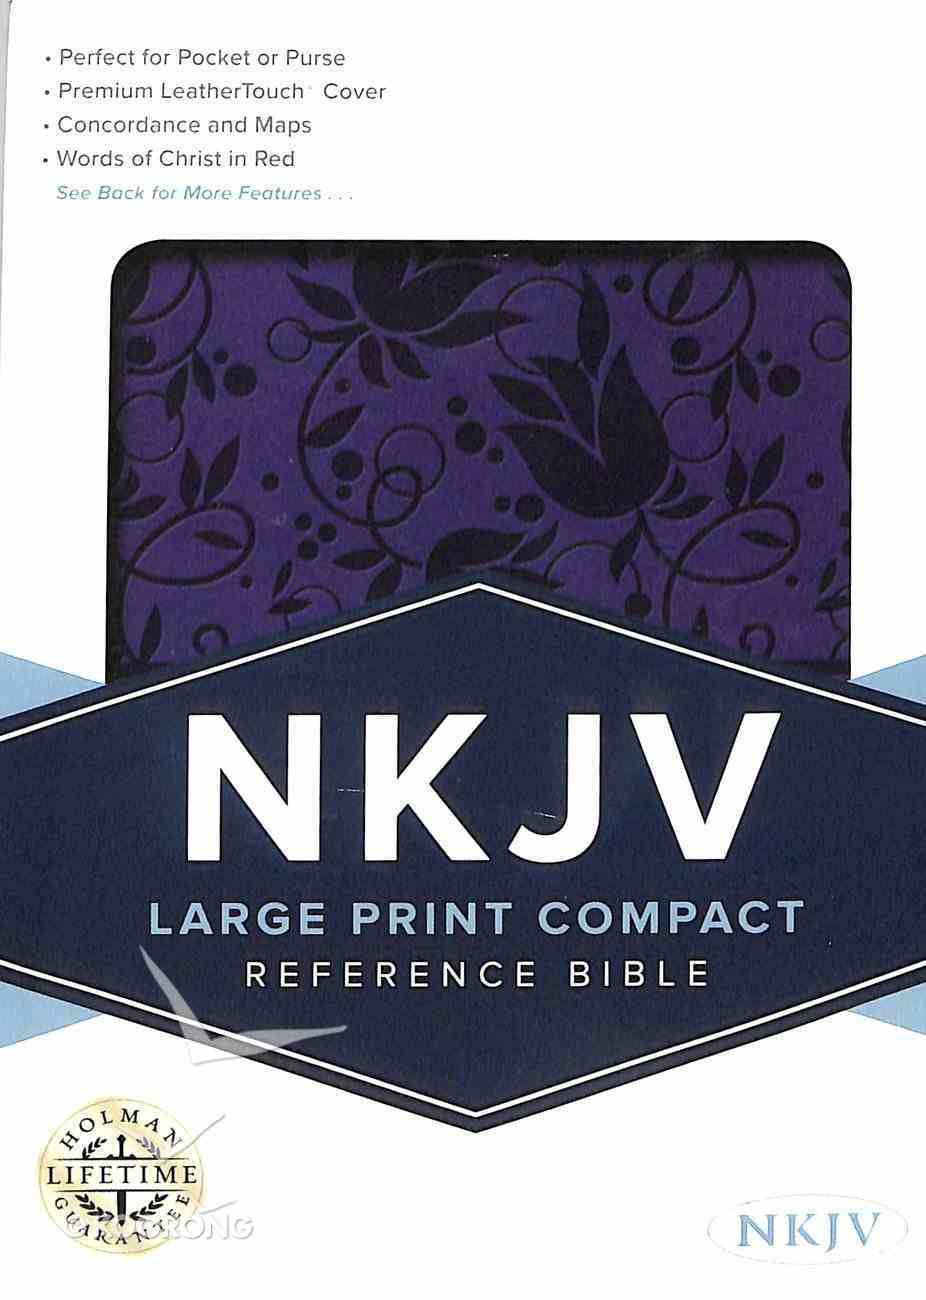 NKJV Large Print Compact Reference Bible Purple Red Letter Edition Imitation Leather